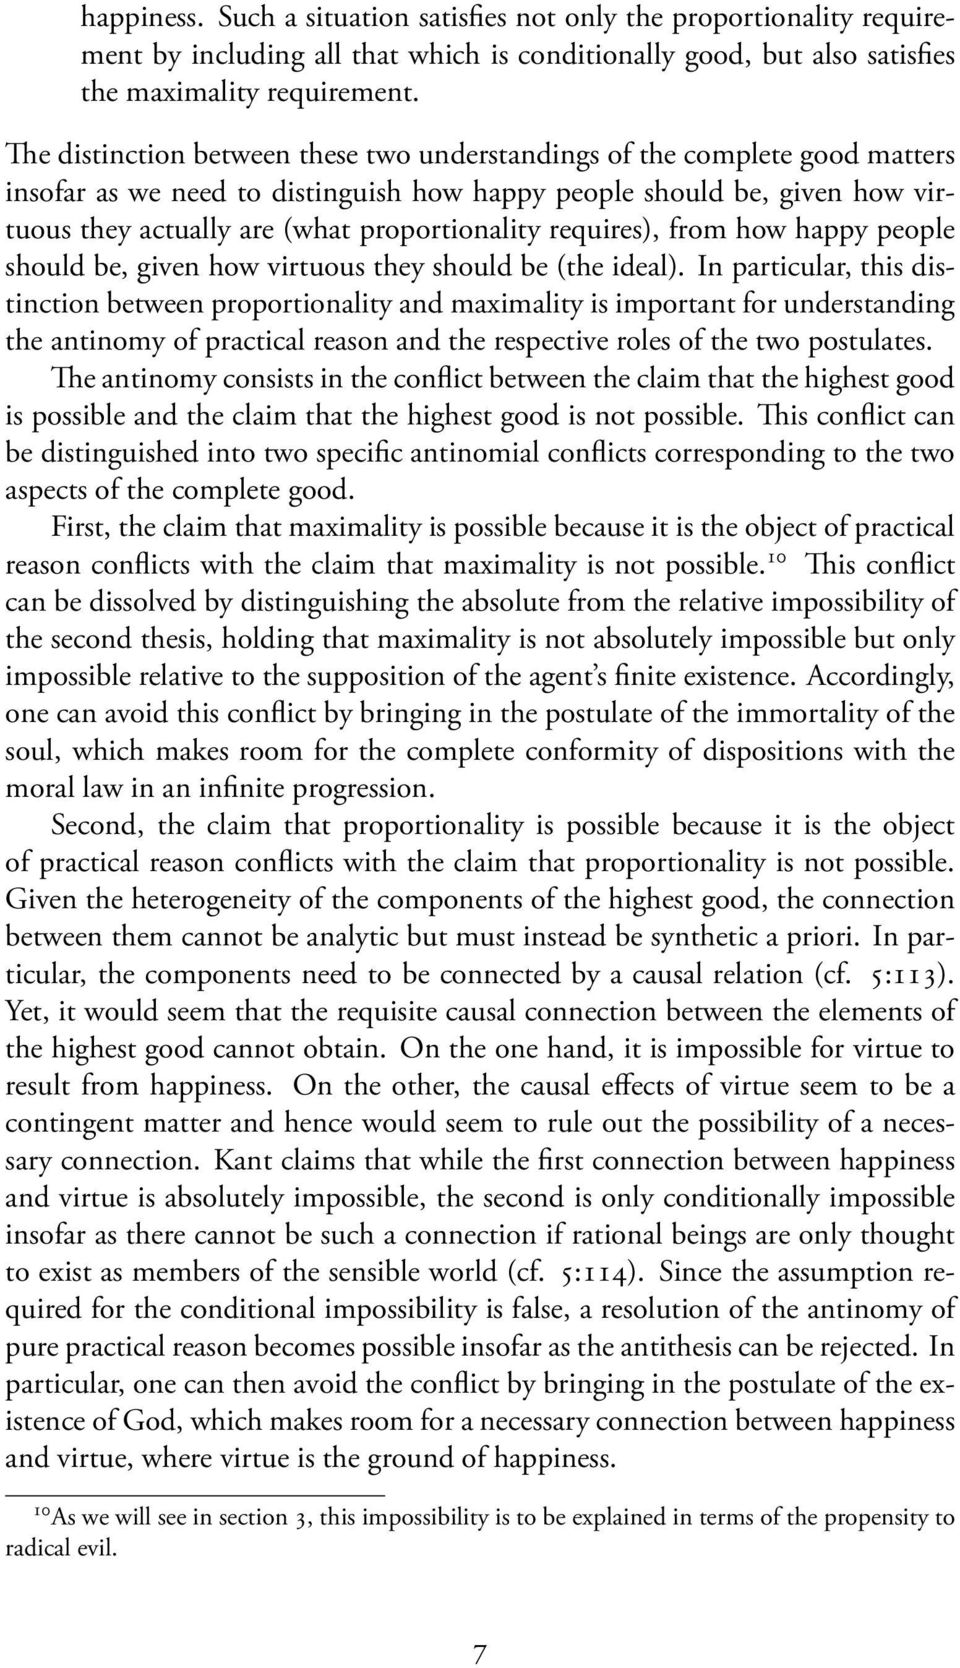 requires), from how happy people should be, given how virtuous they should be (the ideal).